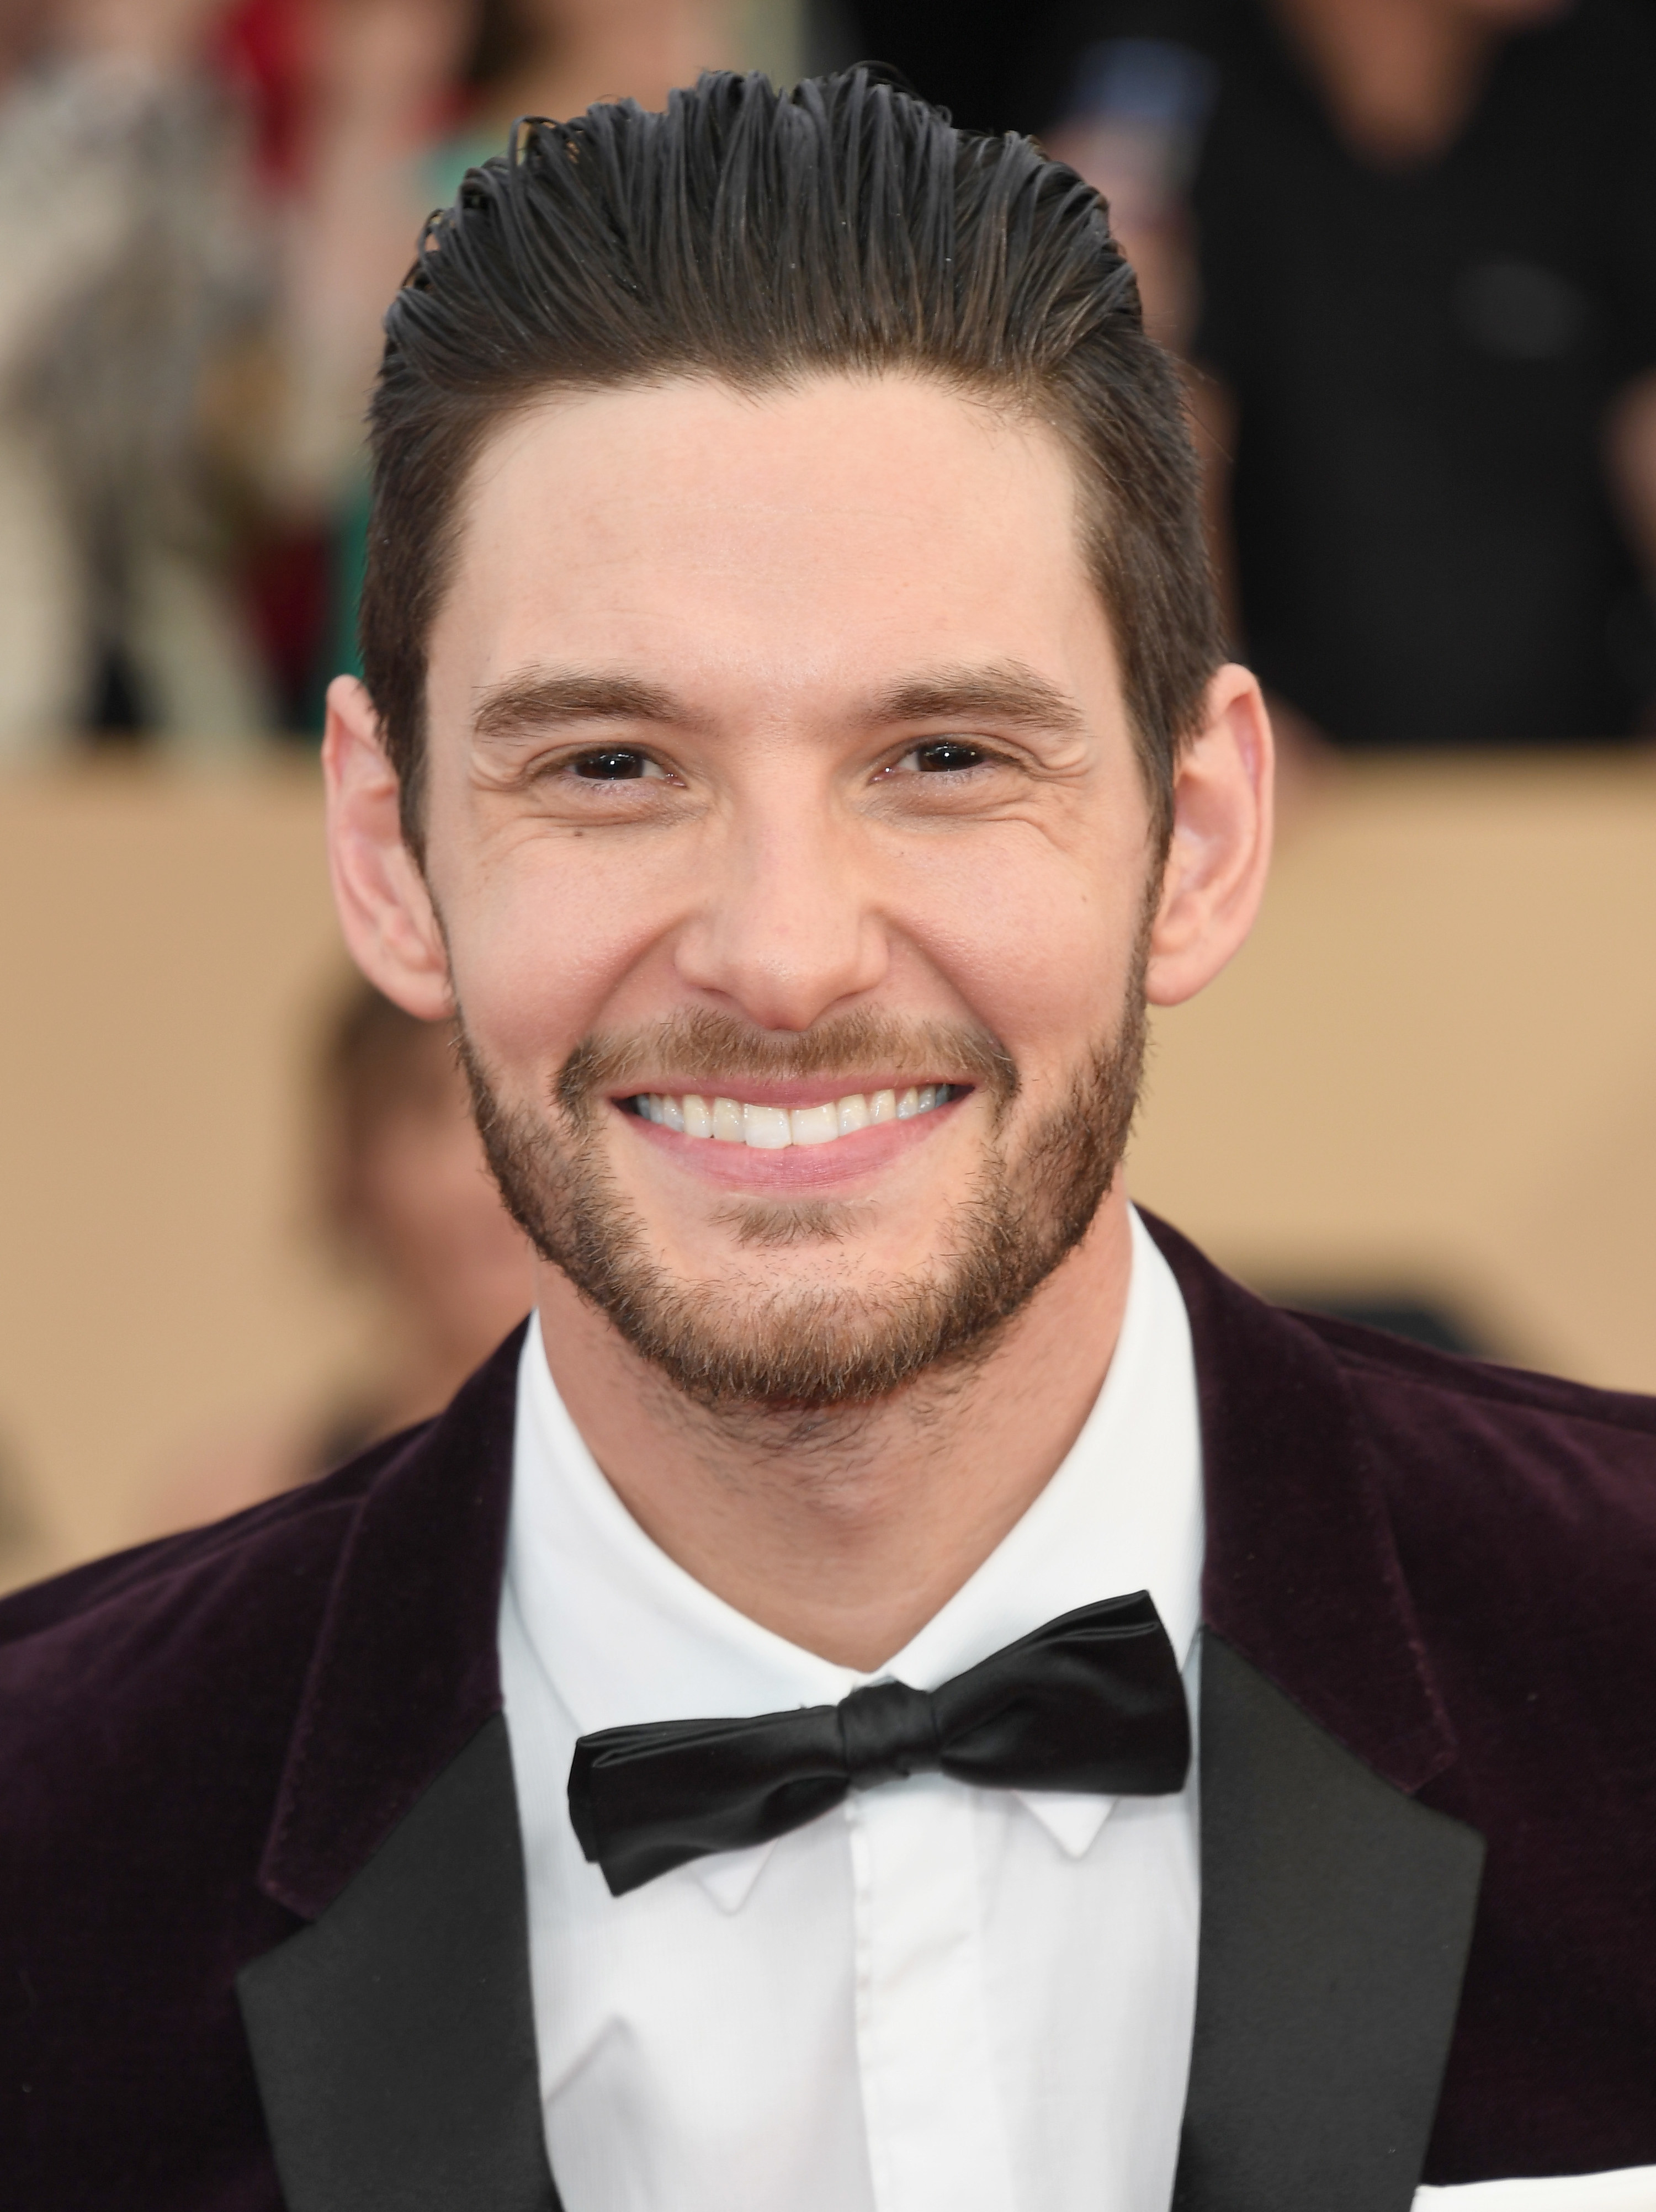 Ben Barnes in a suit, smiling at a red carpet event